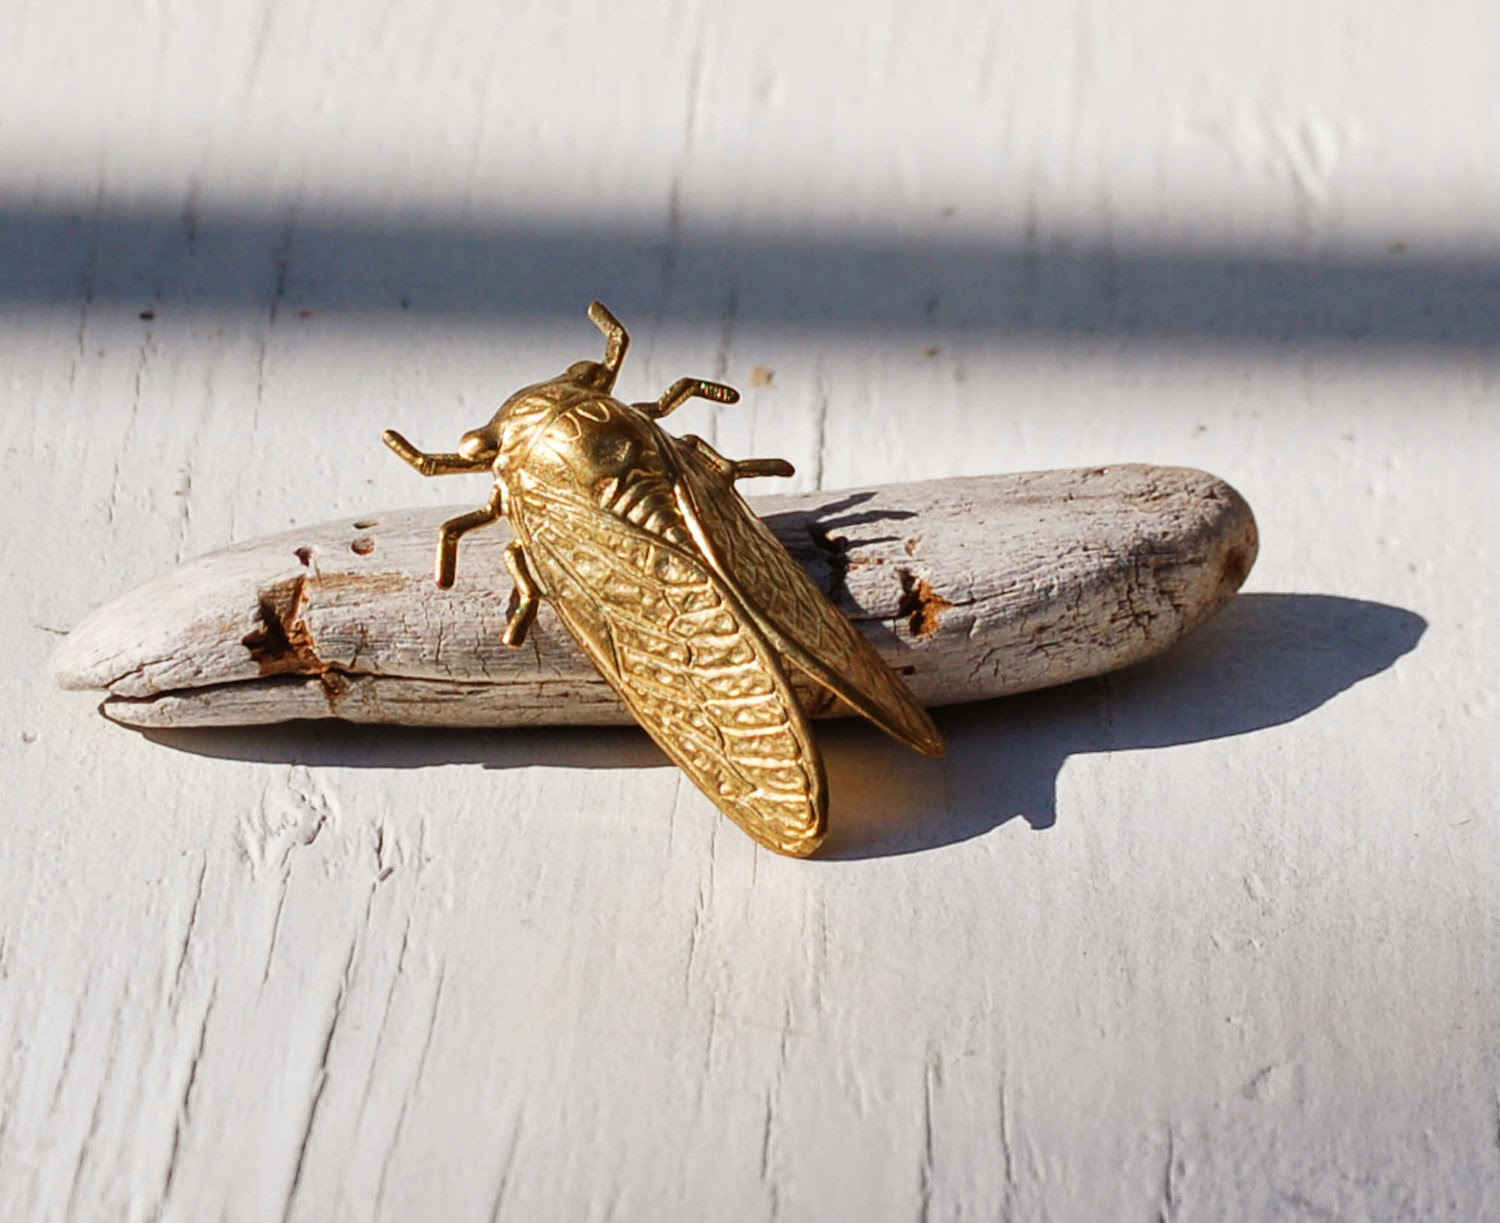 https://www.etsy.com/listing/165611302/cicada-brooch-insect-pin-golden-brass?ref=shop_home_active_3&ga_search_query=beetle